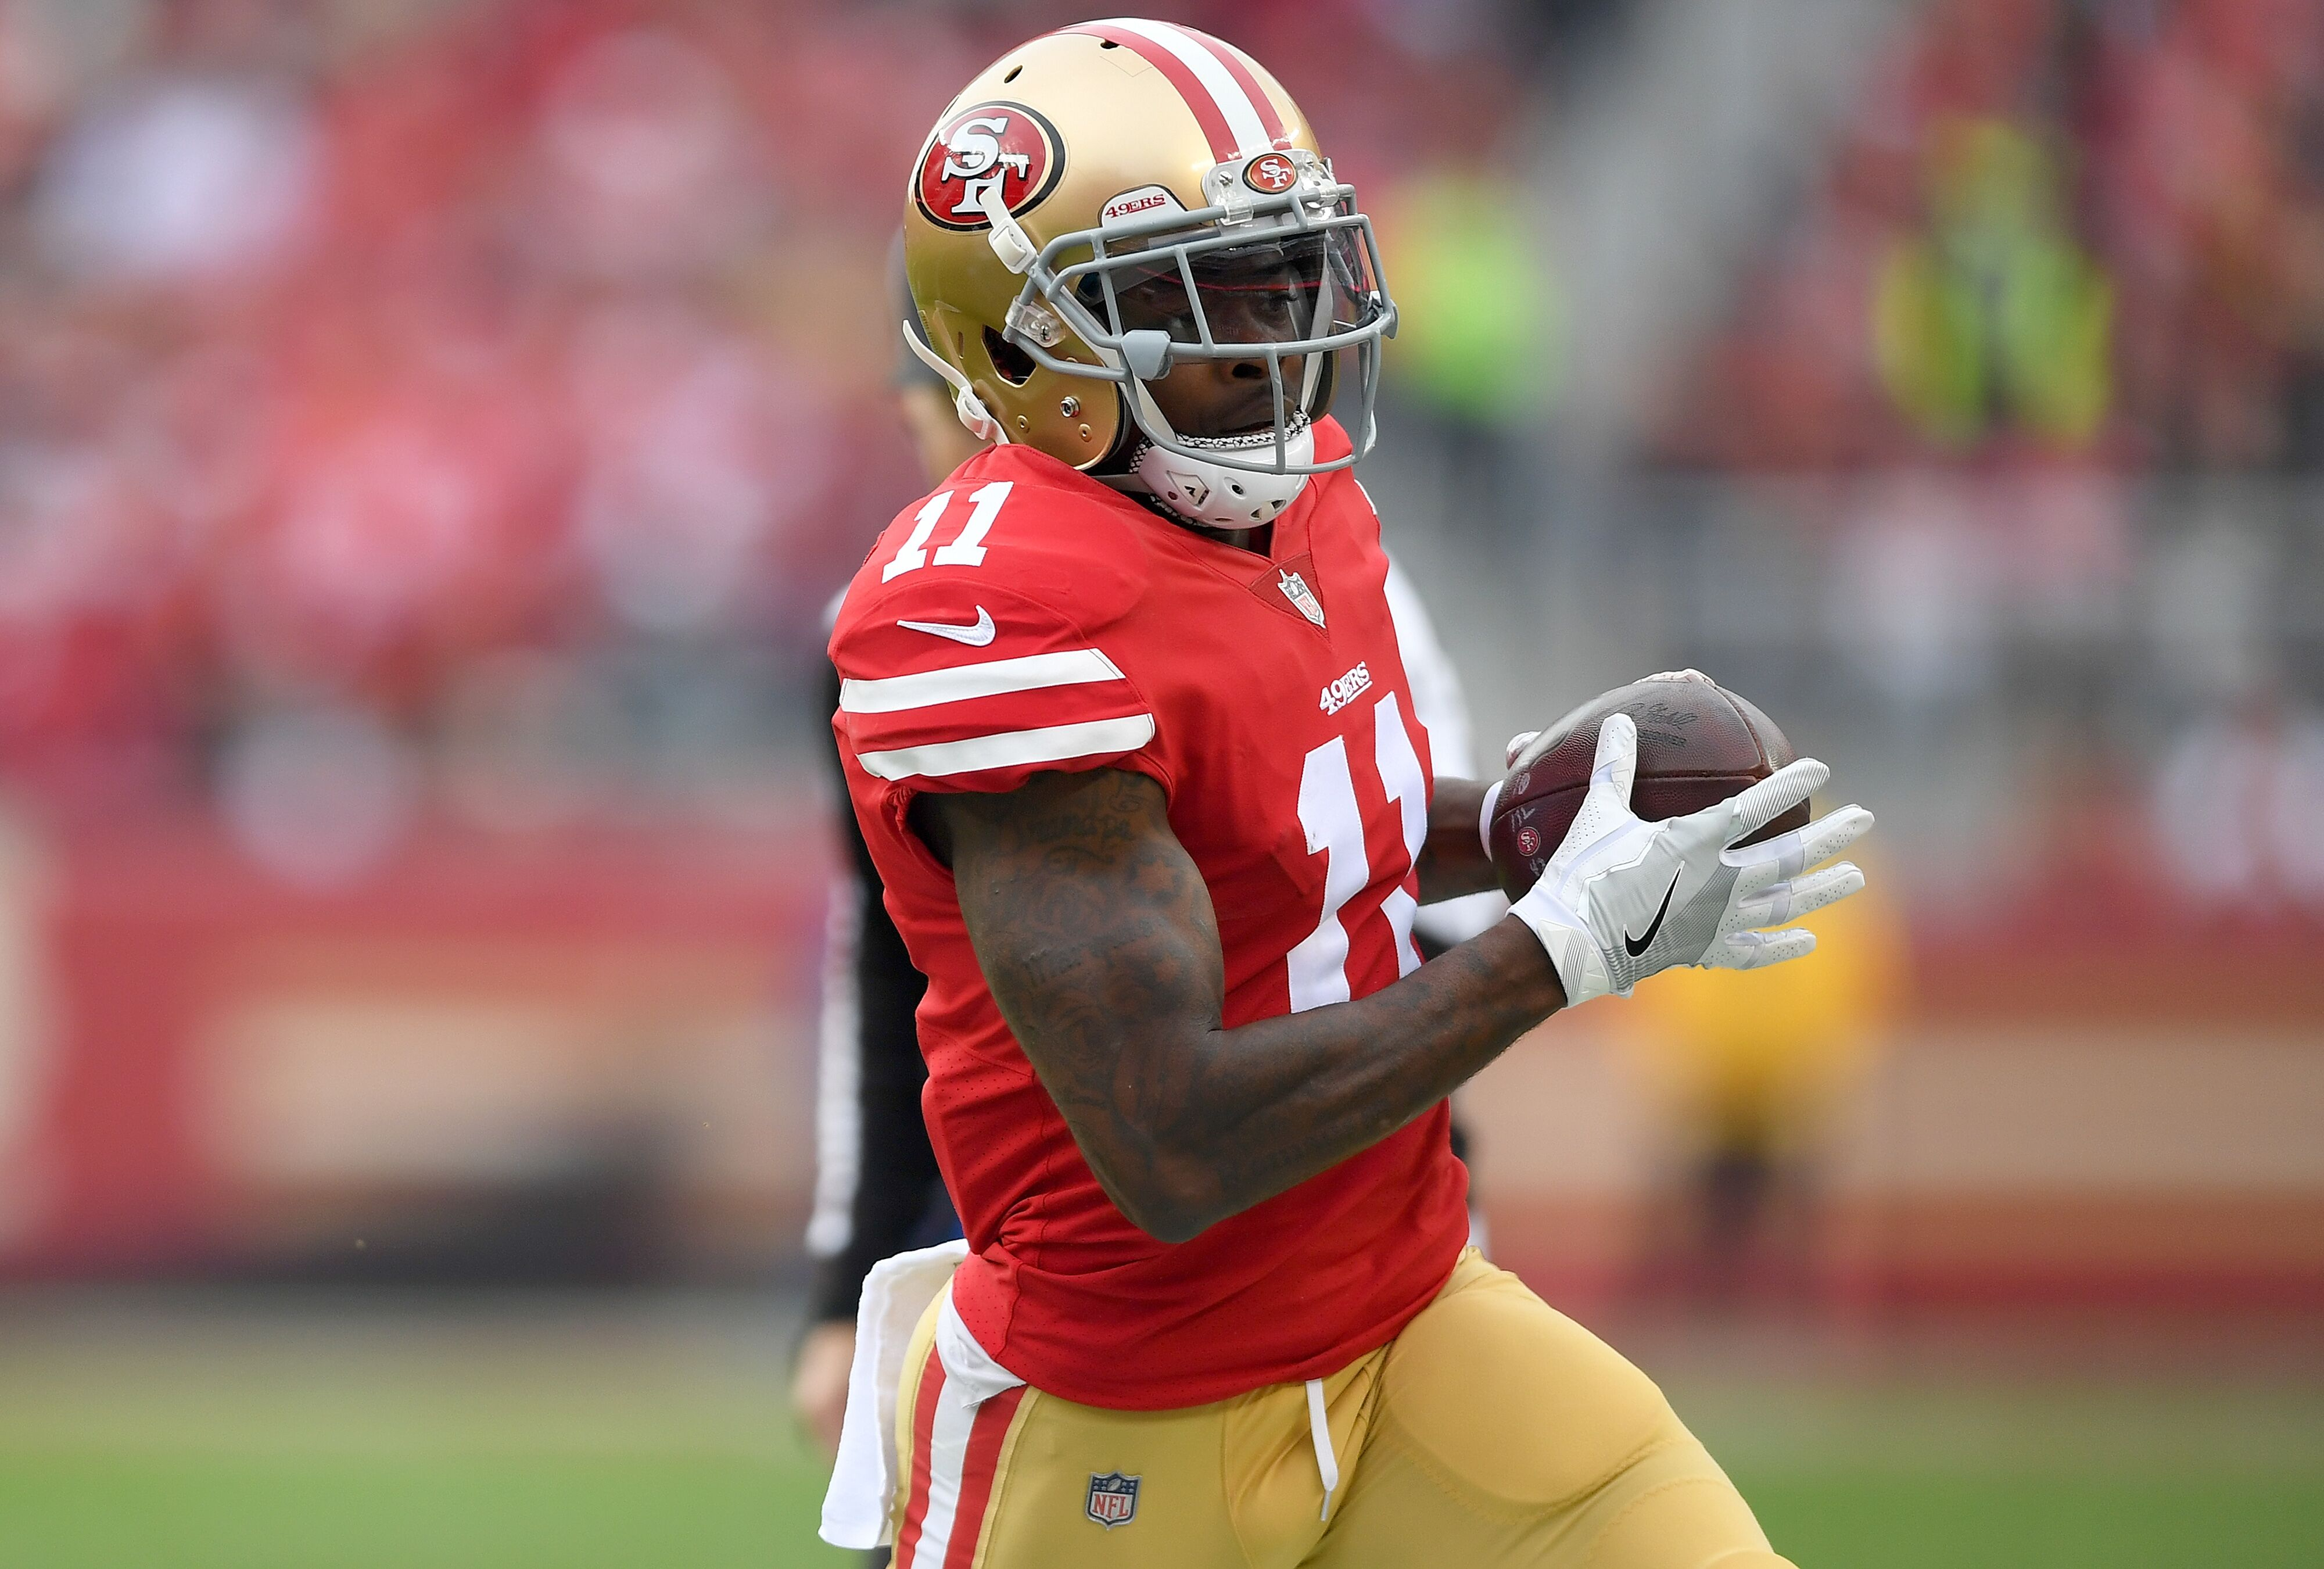 San Francisco 49ers sign Marquise Goodwin to $20M extension